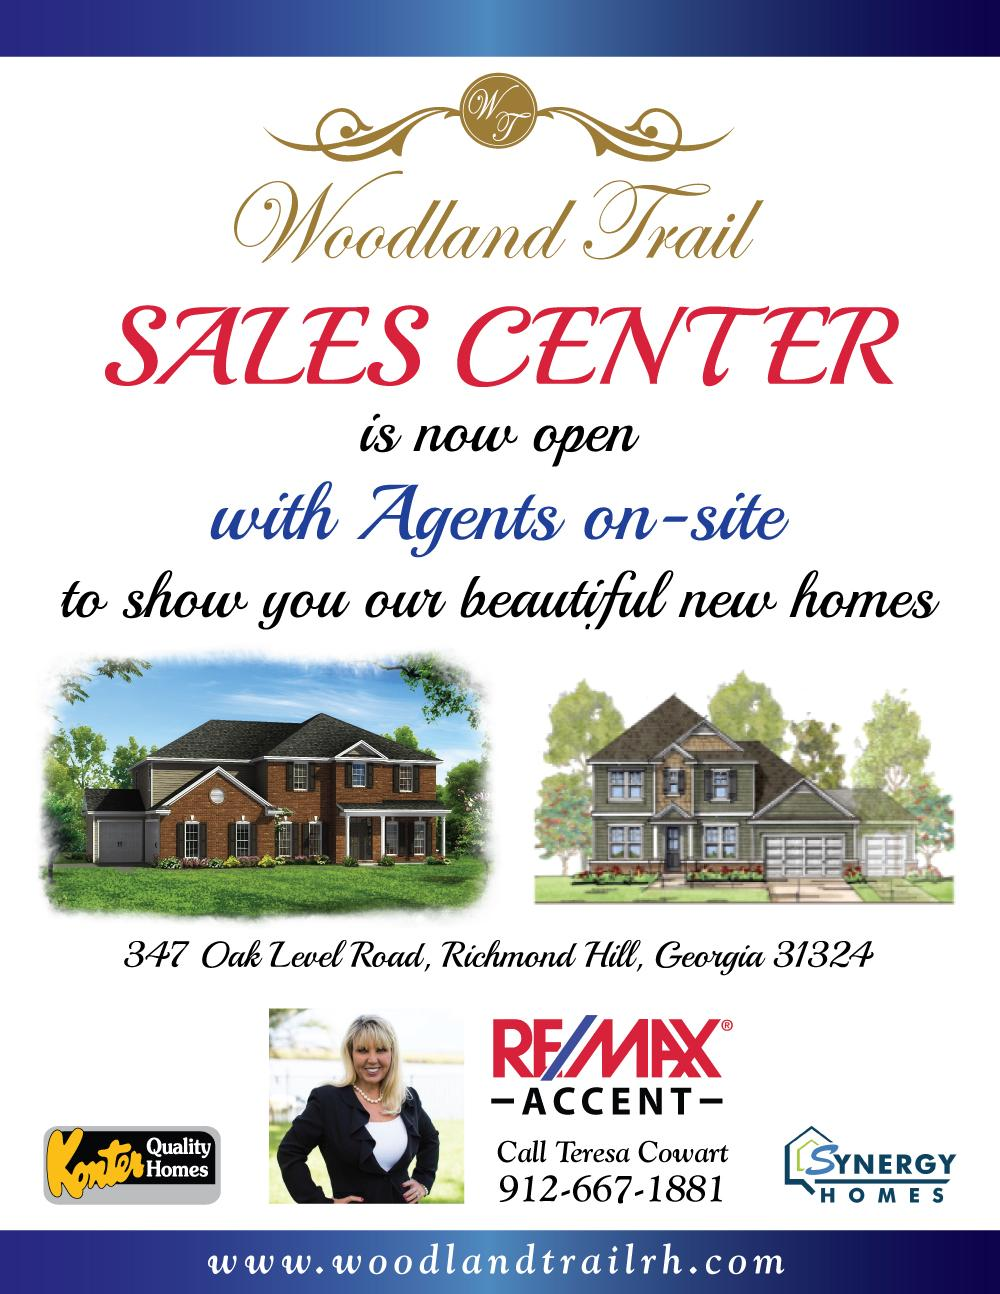 Sales Center Woodland Trail now open